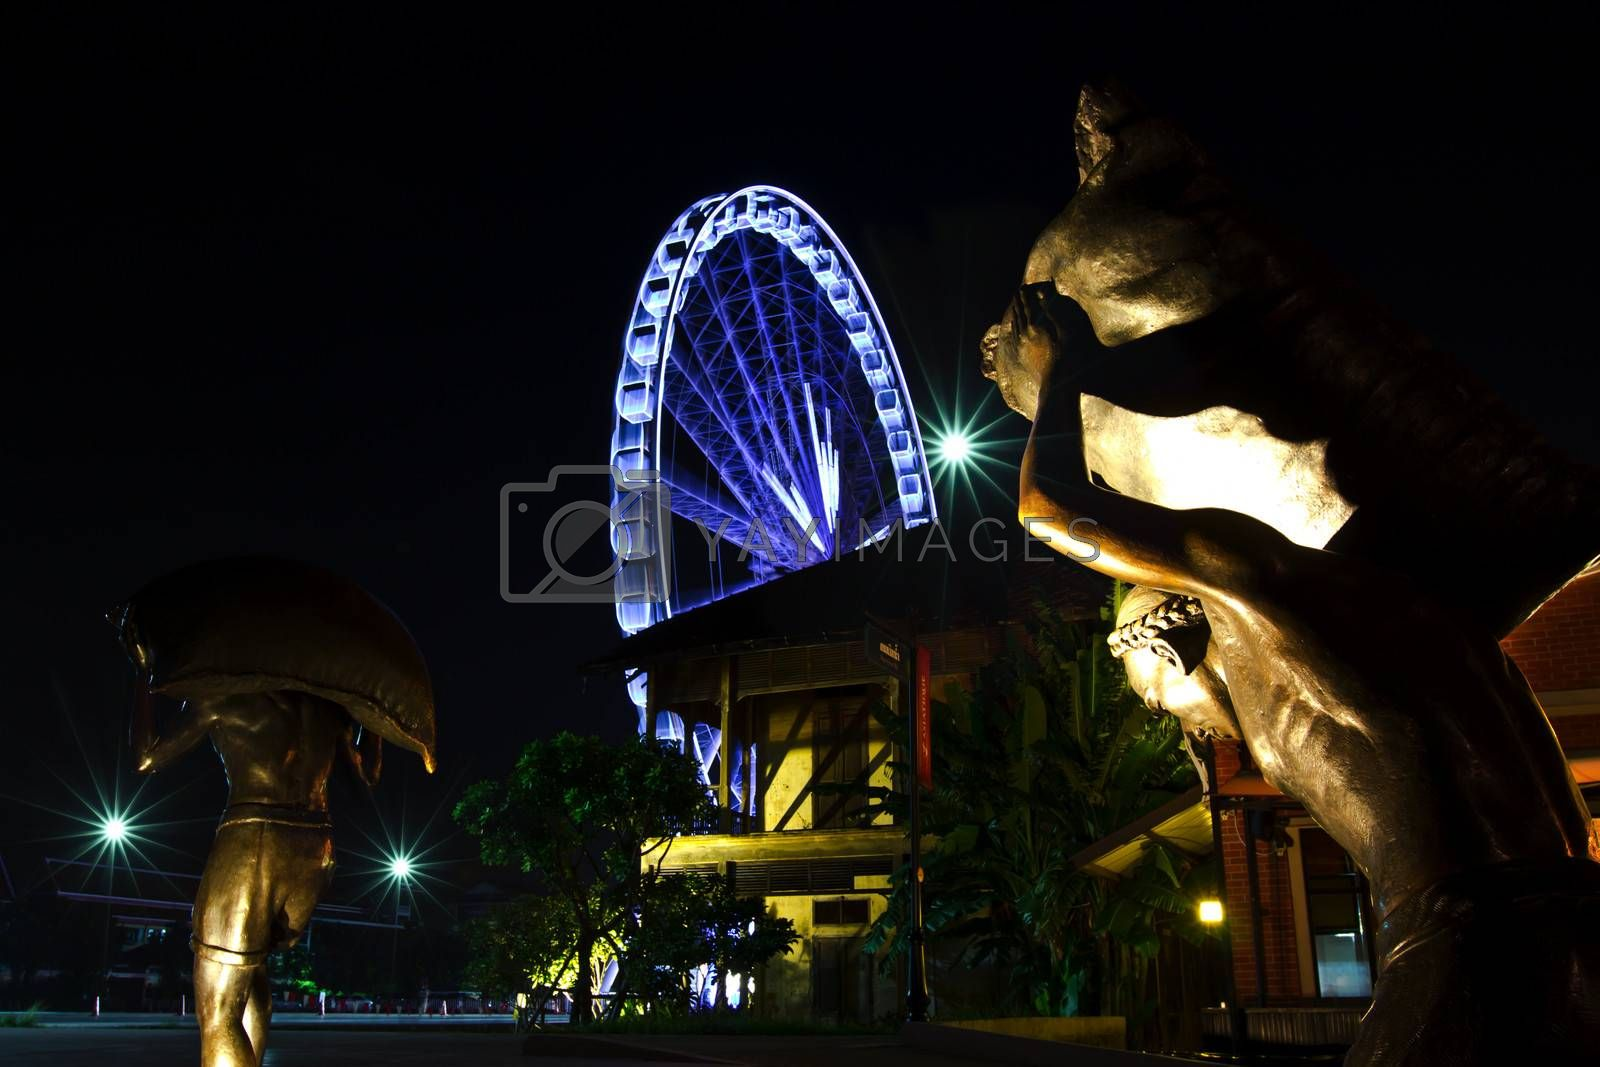 Bangkok at twilight in the dark of sky with ferris wheel background and foreground of the chinese labor statue